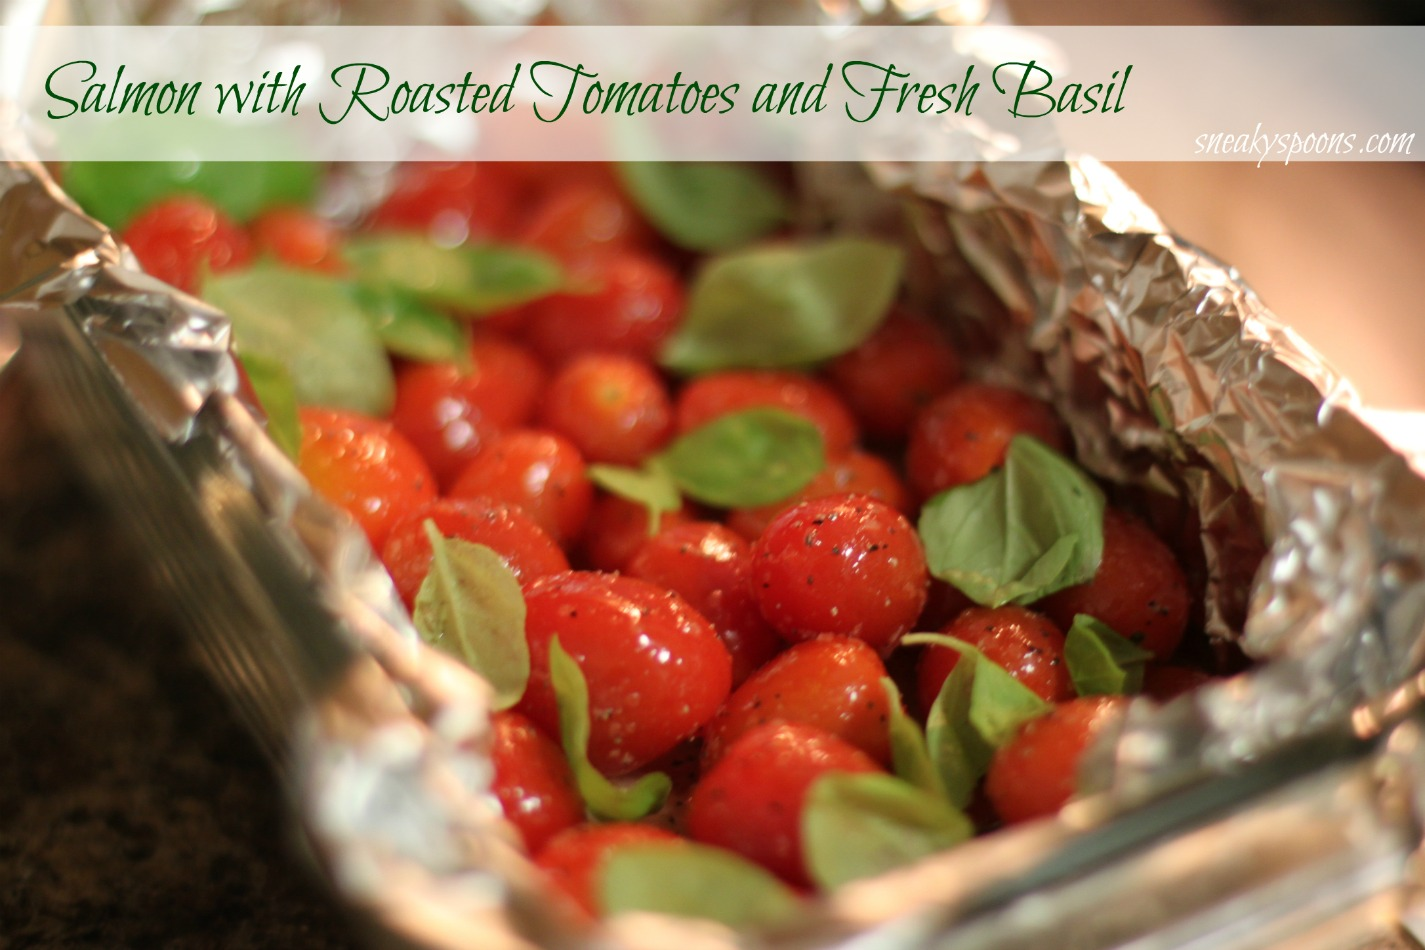 Salmon with Roasted Tomatoes and Fresh Basil